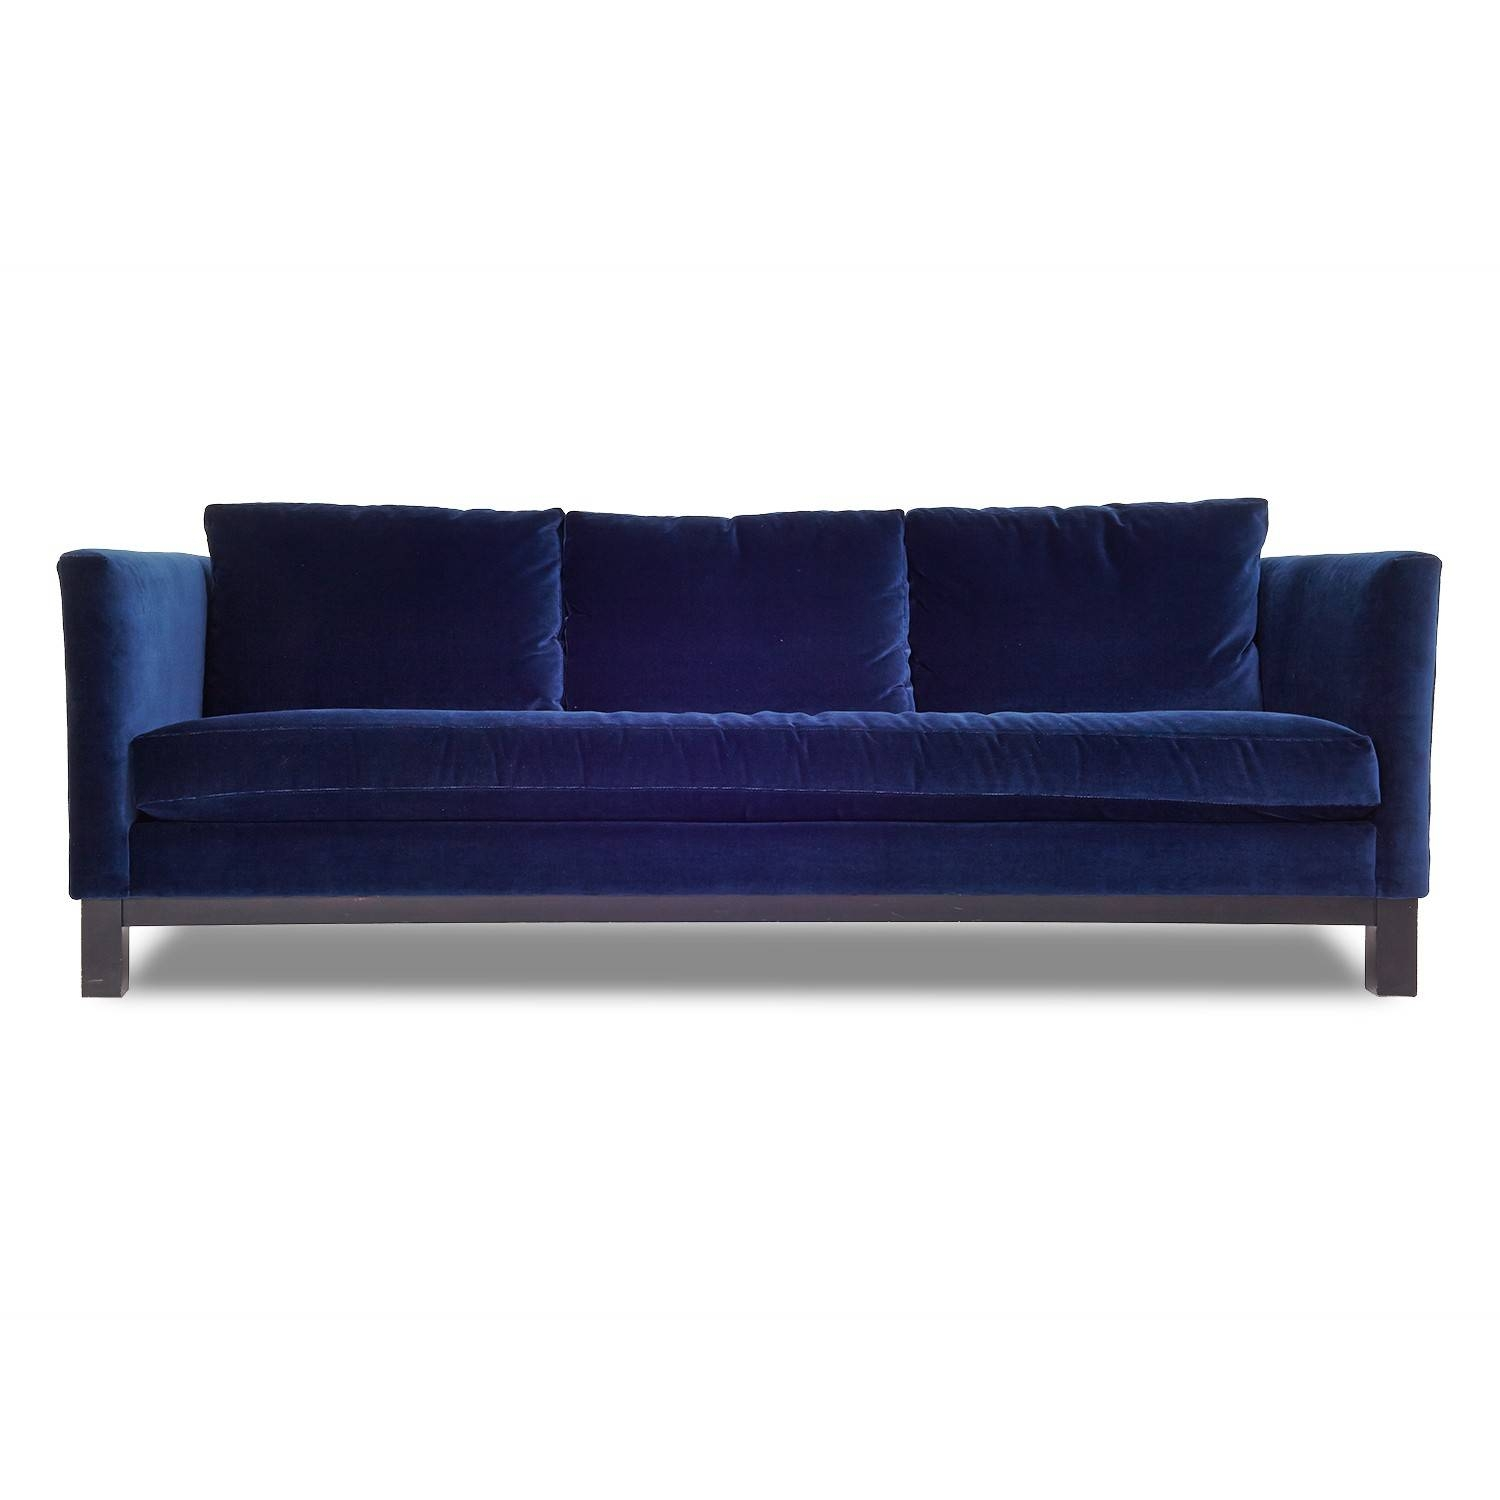 Cobble Hill Sofa 67 With Cobble Hill Sofa | Jinanhongyu throughout Cobble Hill Sofas (Image 11 of 15)